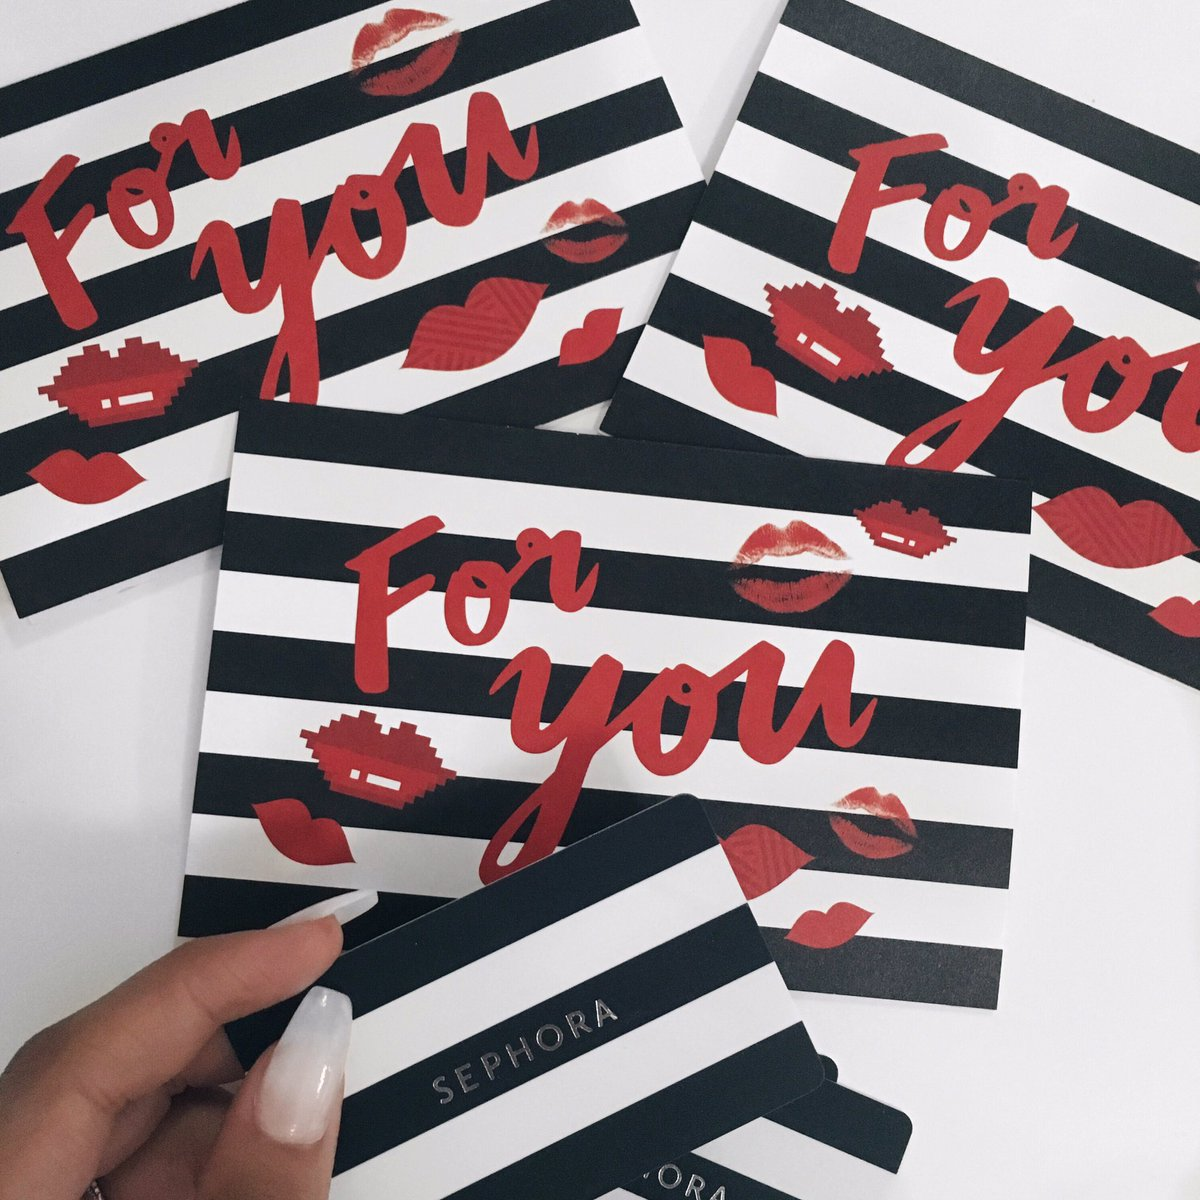 GIVEAWAY TIME: $100 gift card to Sephora to 1 lucky winner! To win: follow me on Twitter and retweet this tweet ❤️❤️ https://t.co/1nOiYaDSuB